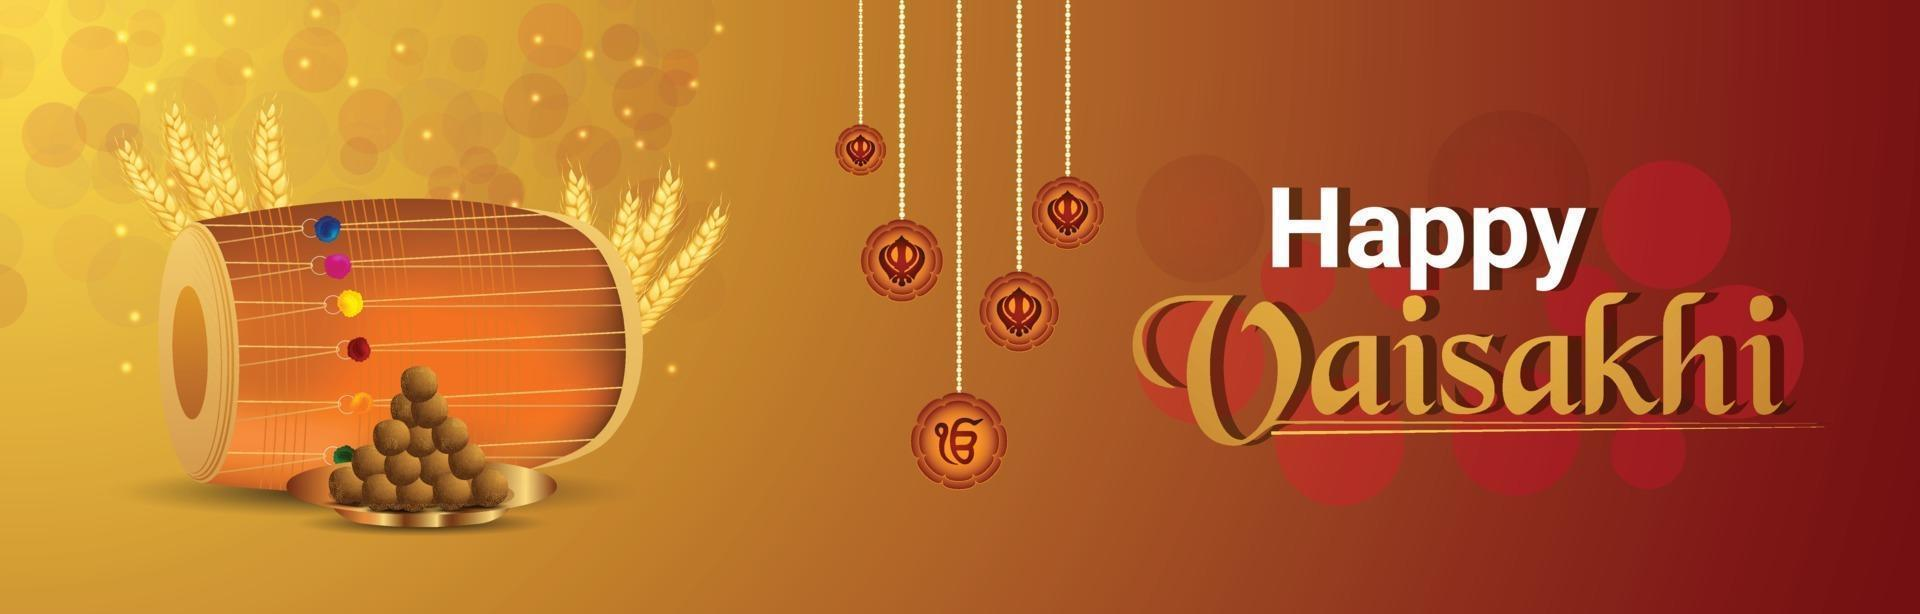 Happy vaisakhi greeting card or banner vector